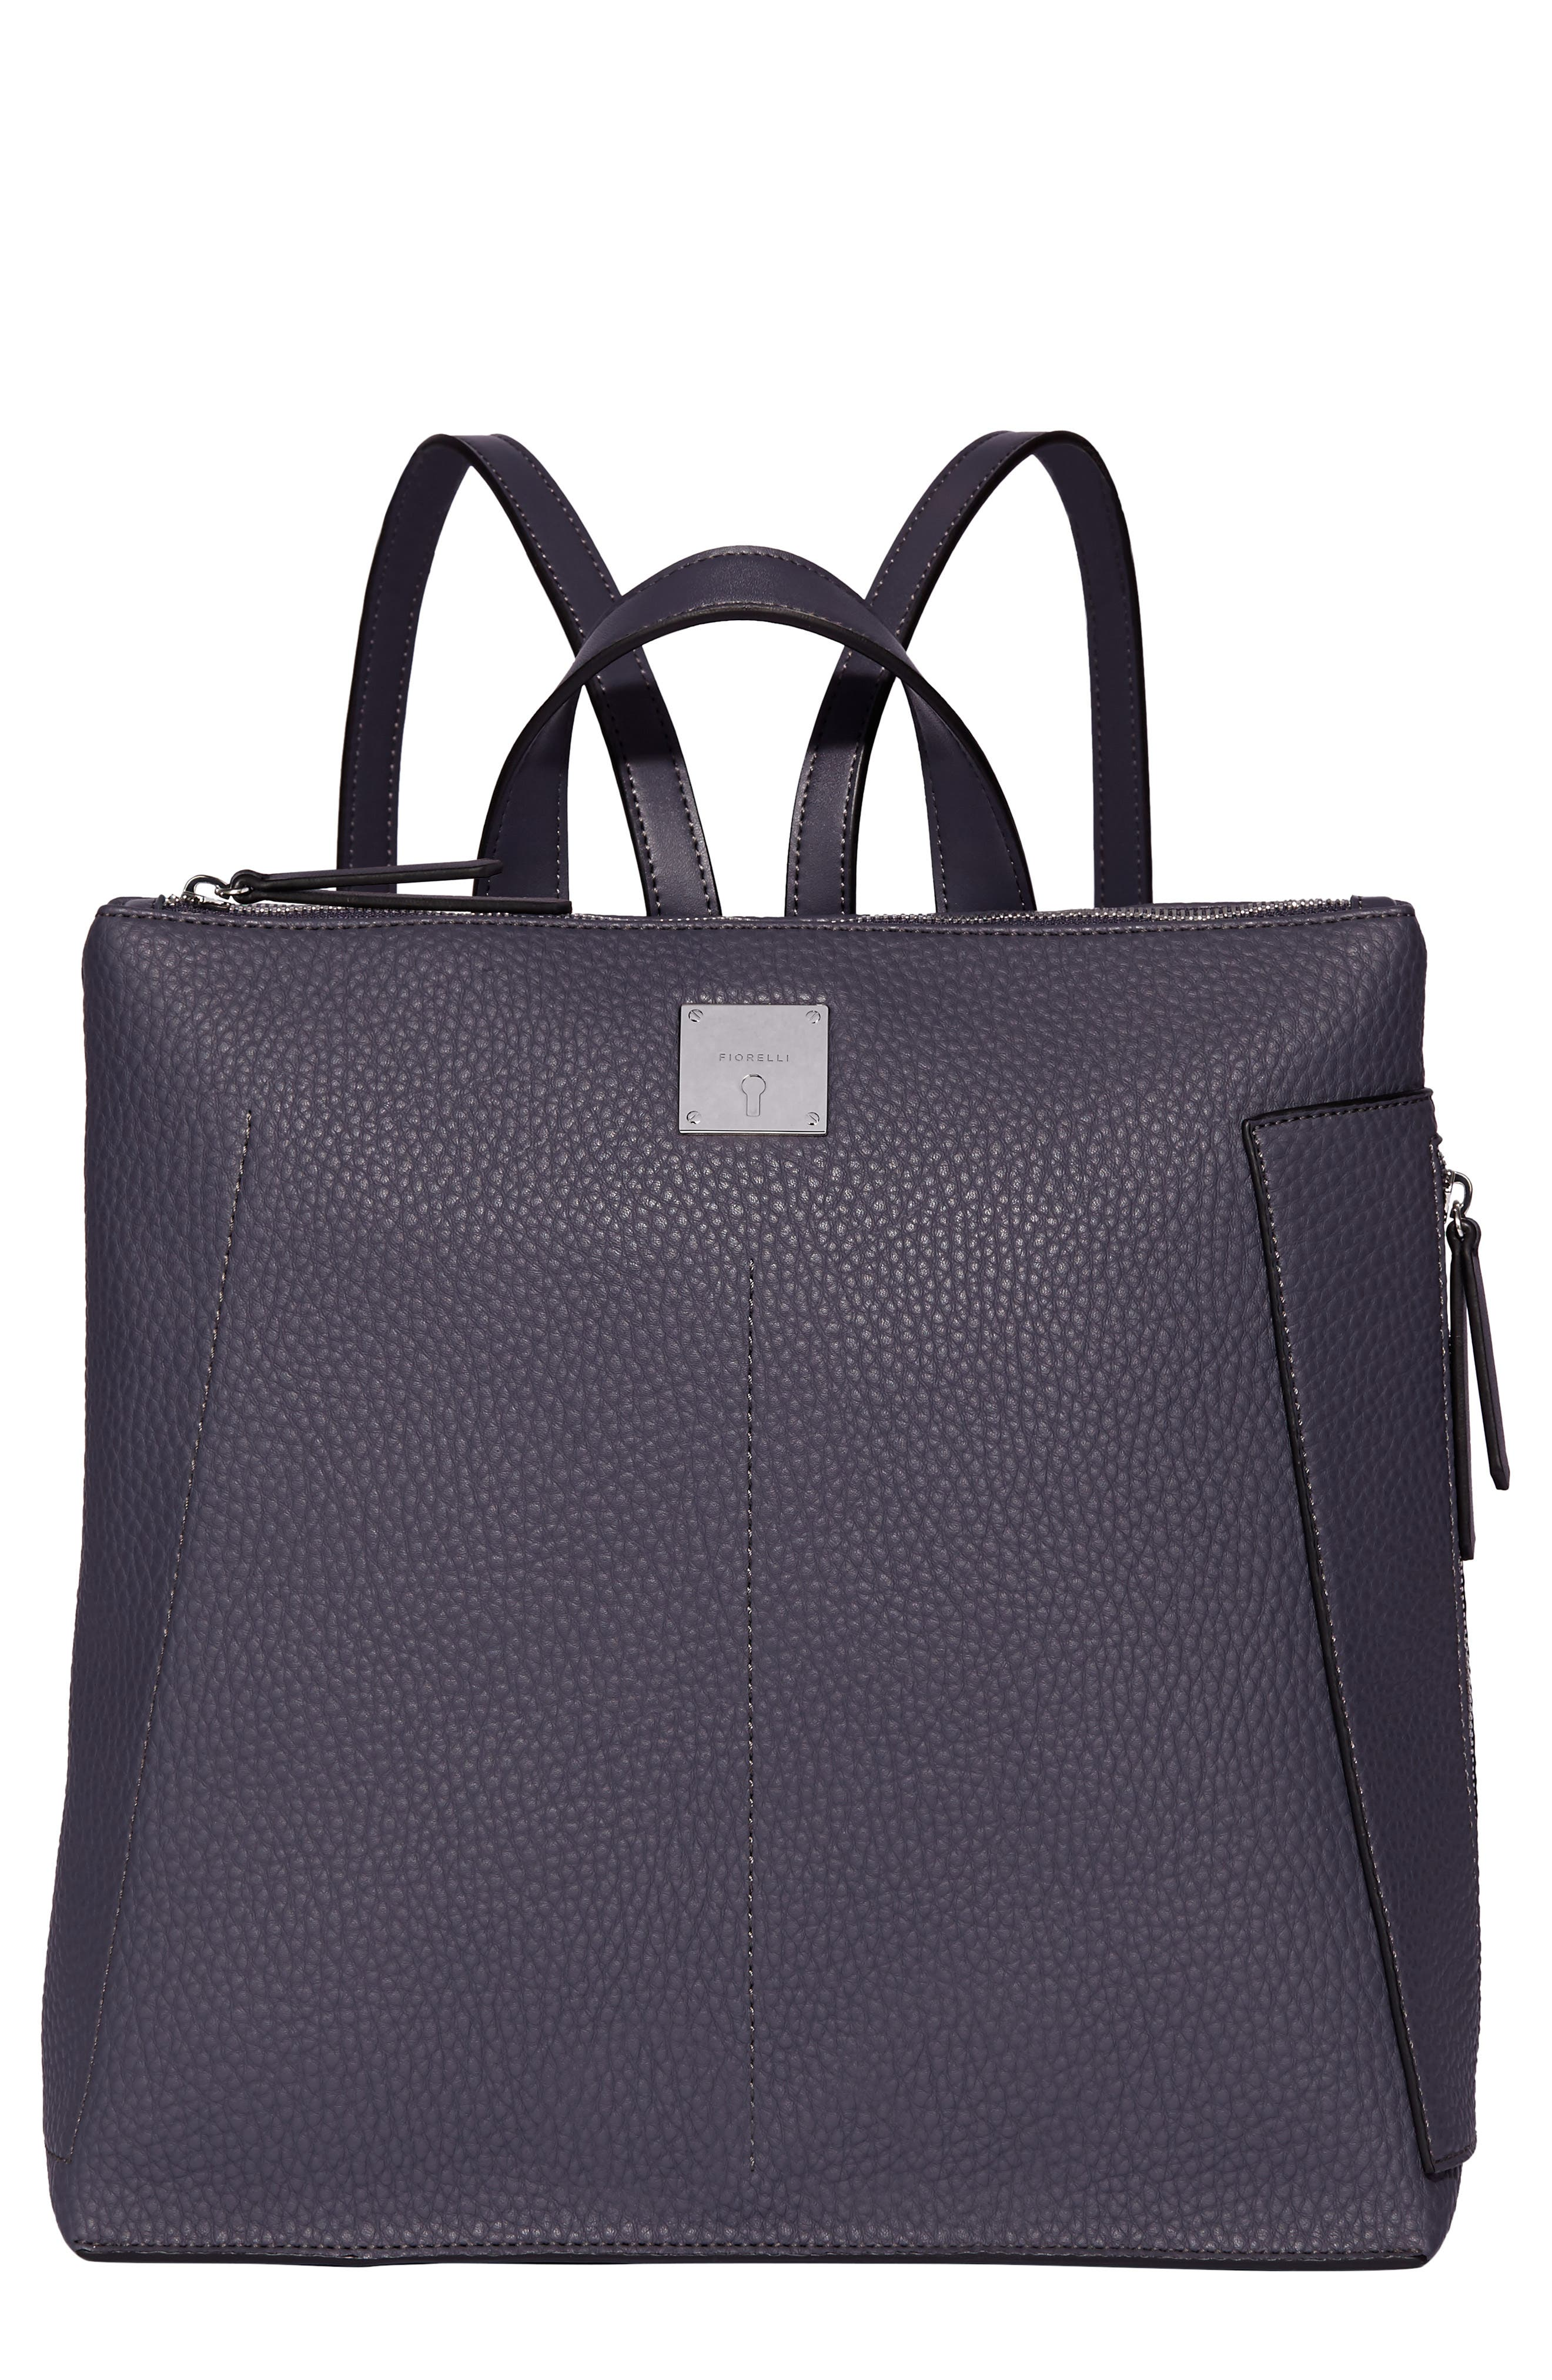 Finley Faux Leather Backpack,                             Main thumbnail 1, color,                             Fenchurch Blue